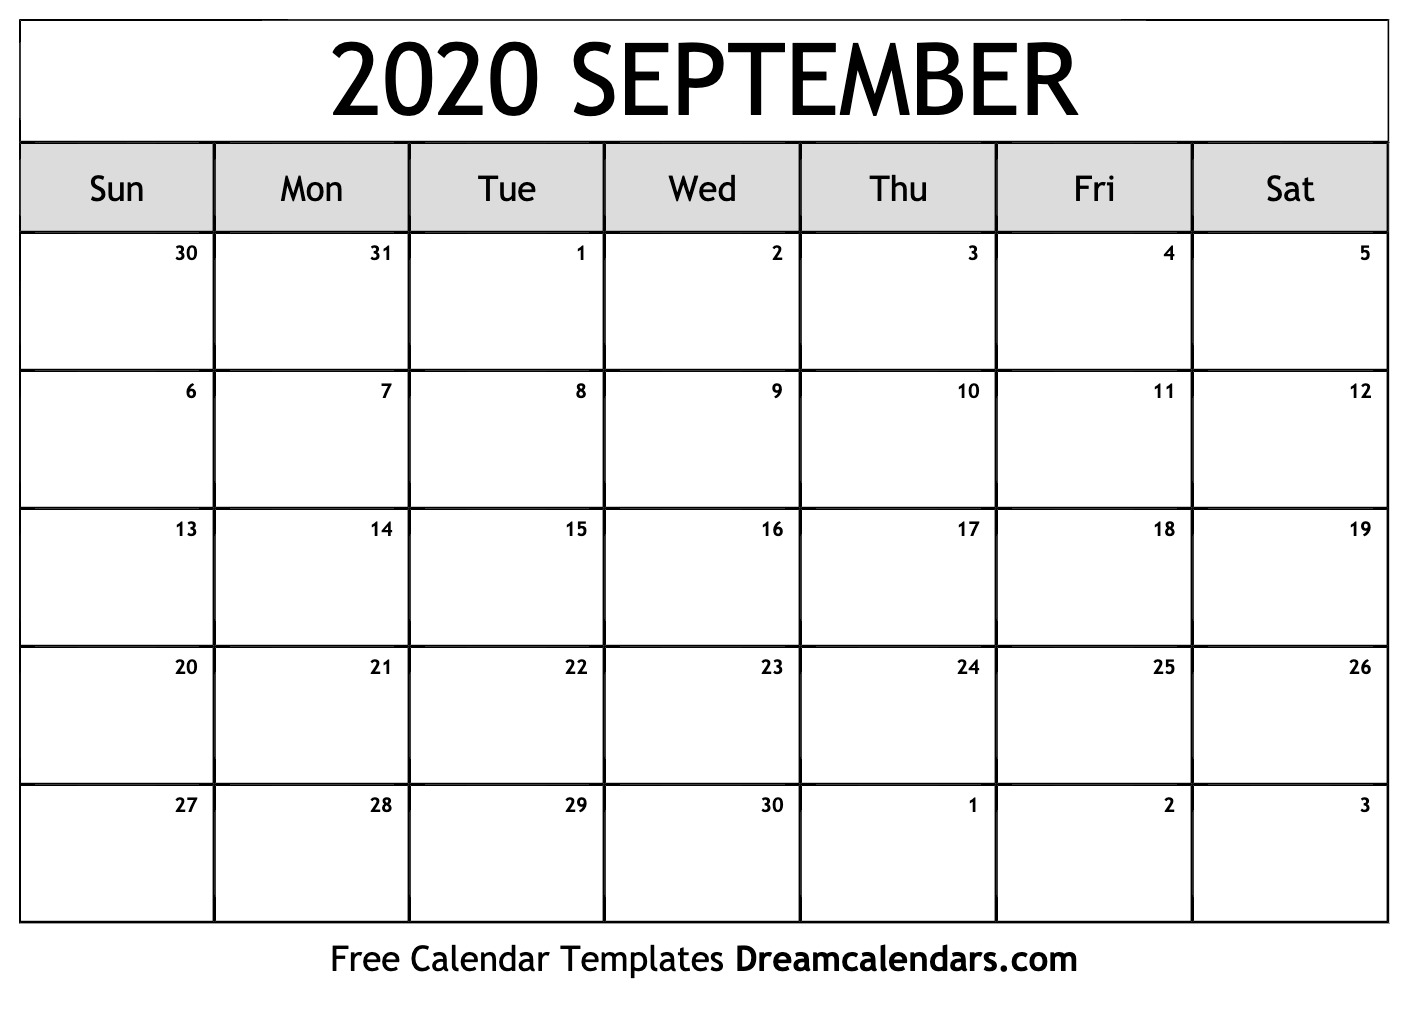 Sept Calendar 2020 Printable Printable September 2020 Calendar